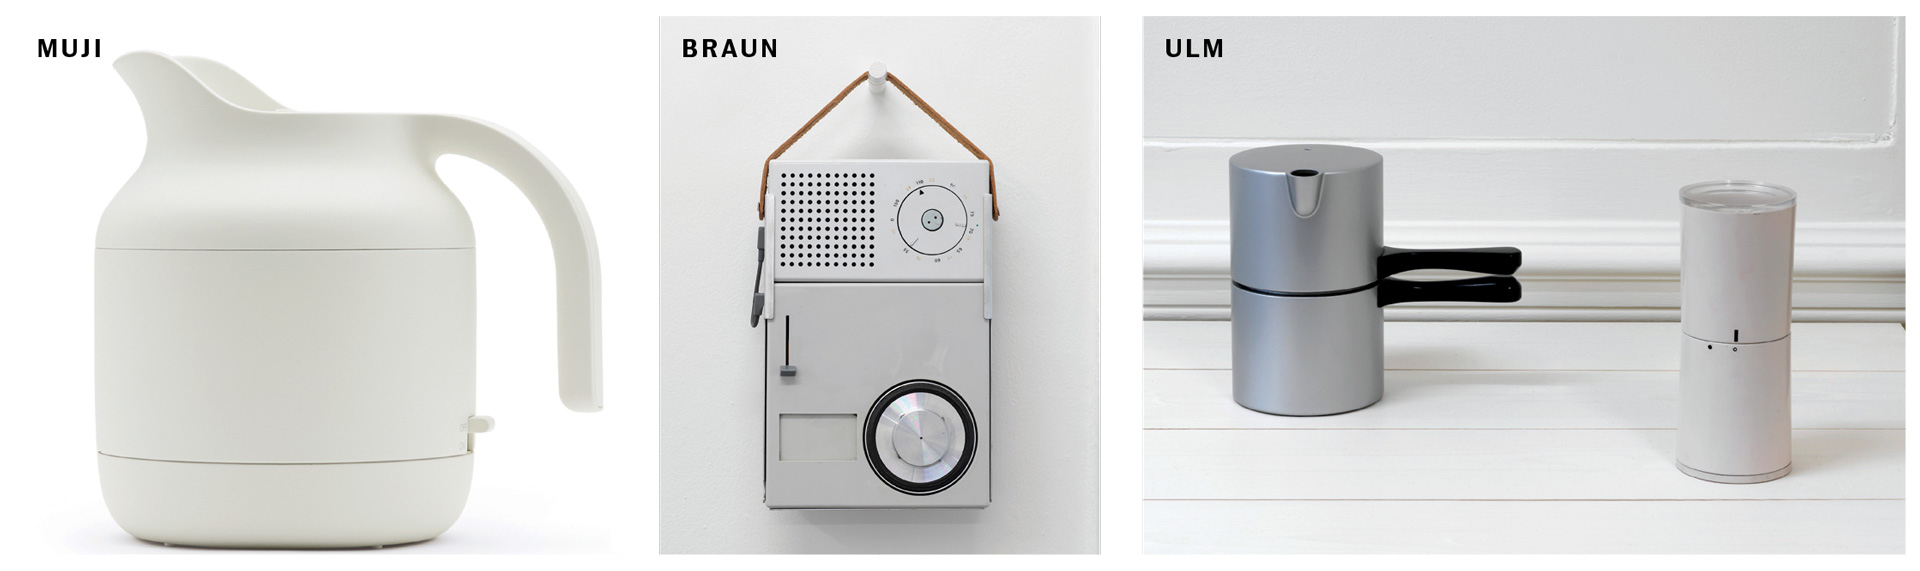 How muji brought the ulm school to the high street for Hfg ulm design